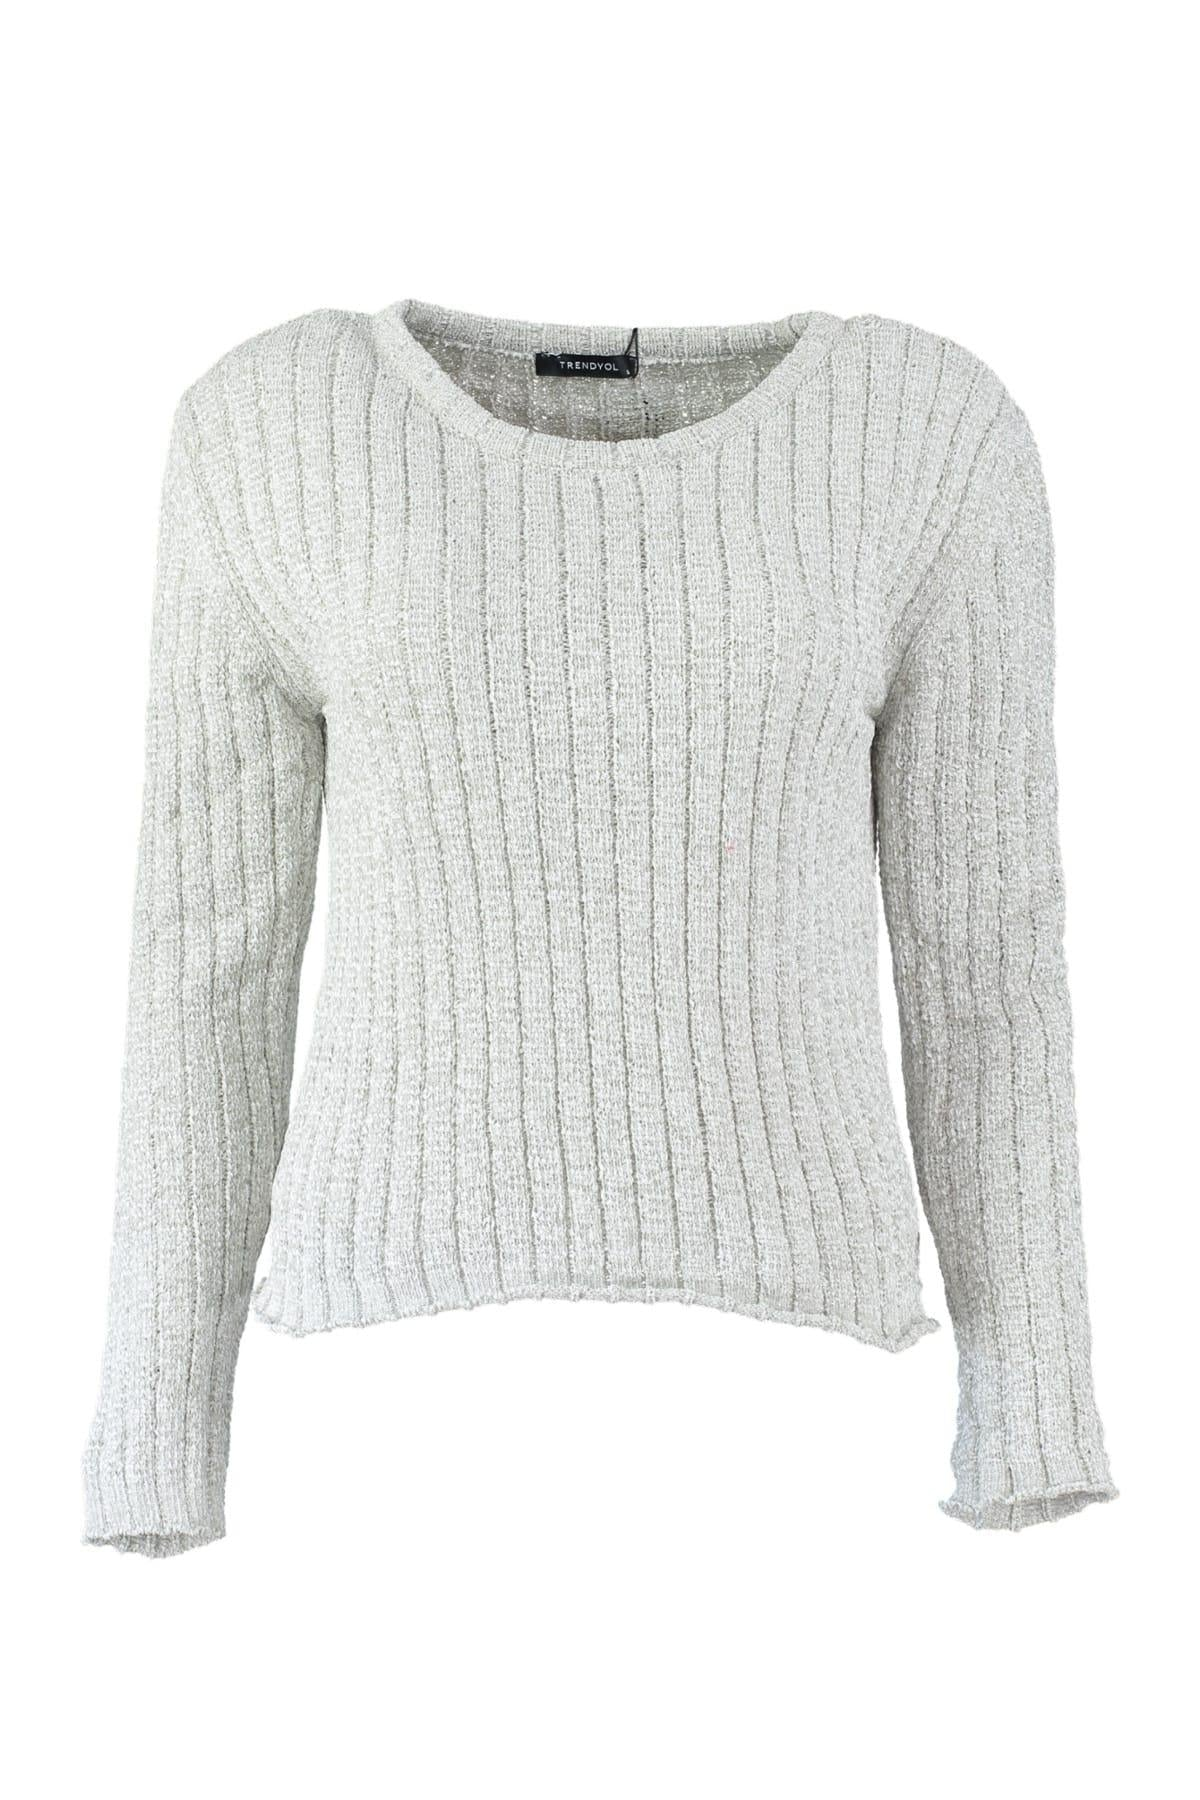 WOMEN Stone Bicycle Neck Şönil Knitwear Sweater TWOAW20WW0010